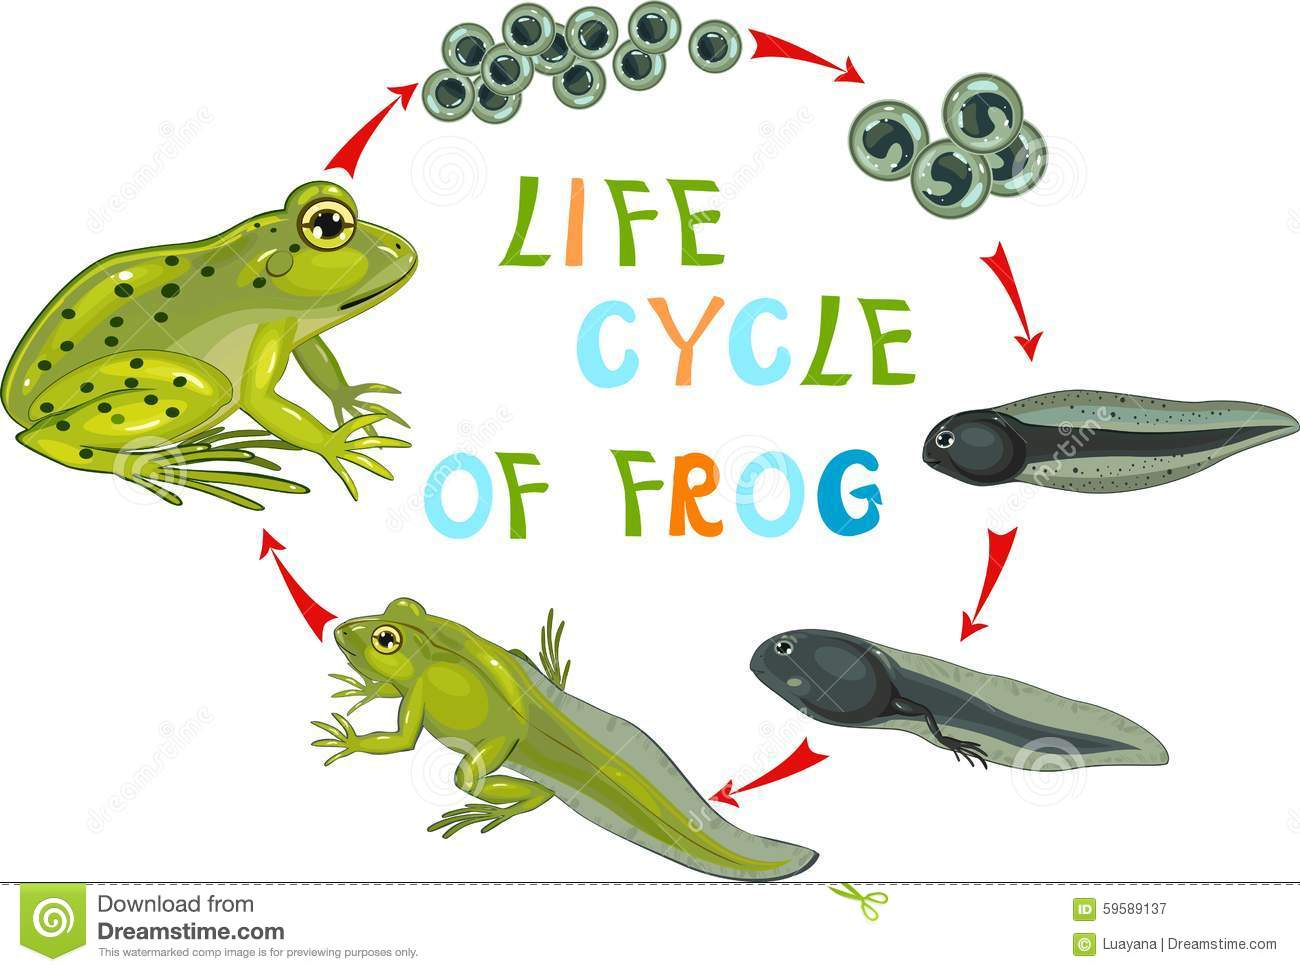 Frog cycle clipart banner freeuse Life Cycle Of The Frog Royalty Free Stock Photo - Image: 30840015 banner freeuse